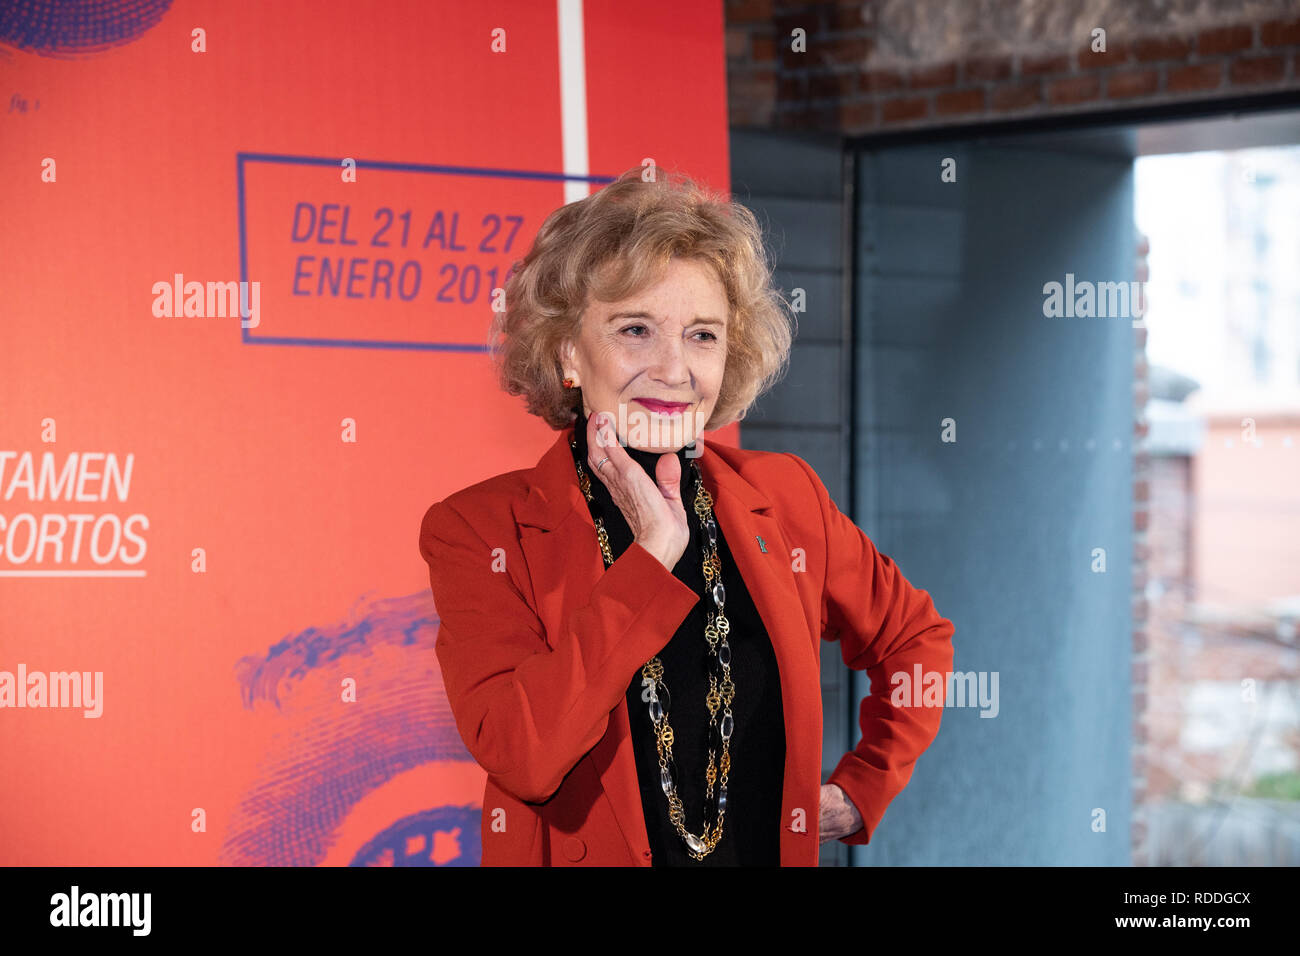 Marisa Paredes, 'Puente de Toledo' award seen during the Goya Awards.  The Carabanchel Film Week has become one of the longest-running exhibitions in Madrid and has made it consolidate as the prelude to the Goya Awards. - Stock Image